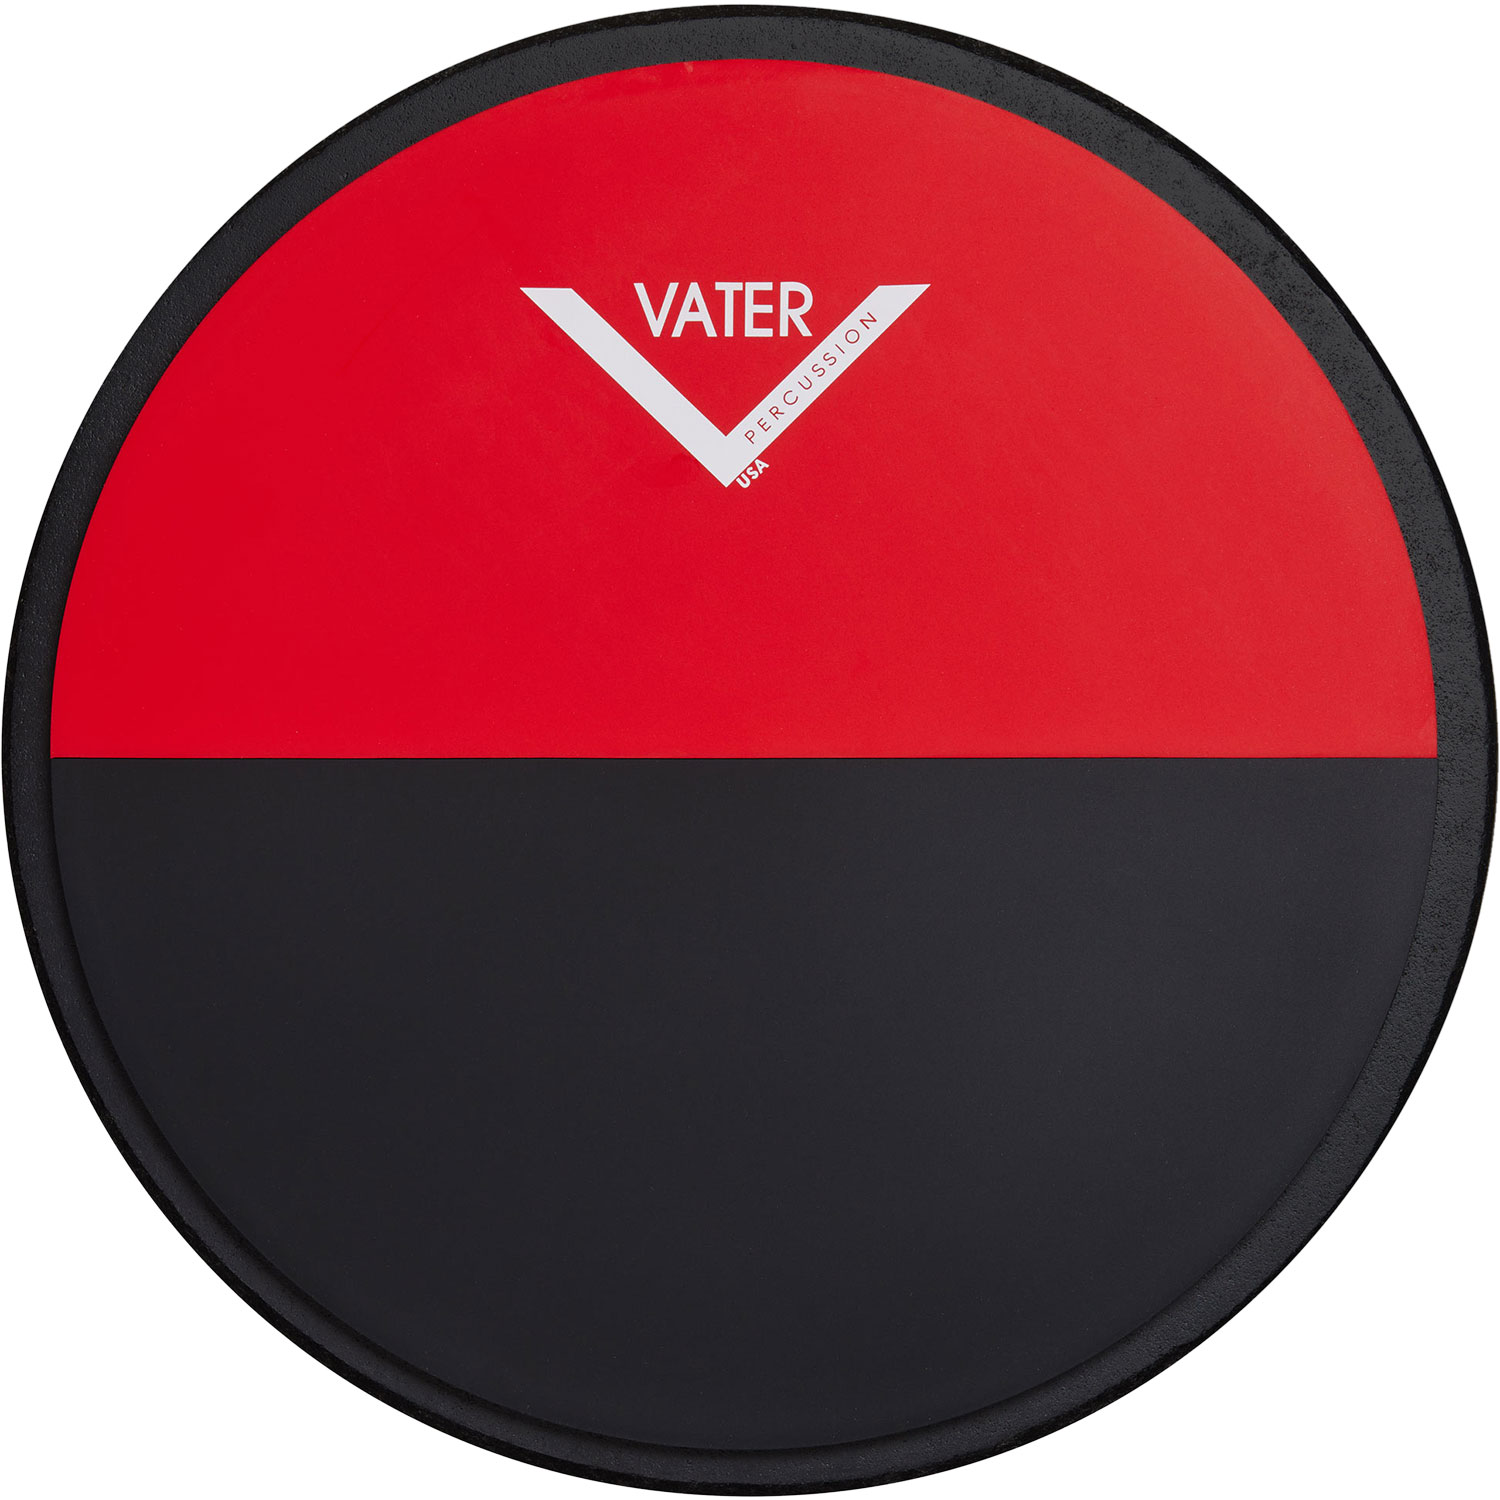 "Vater 12"" Split-Surface Chop Builder Practice Pad"